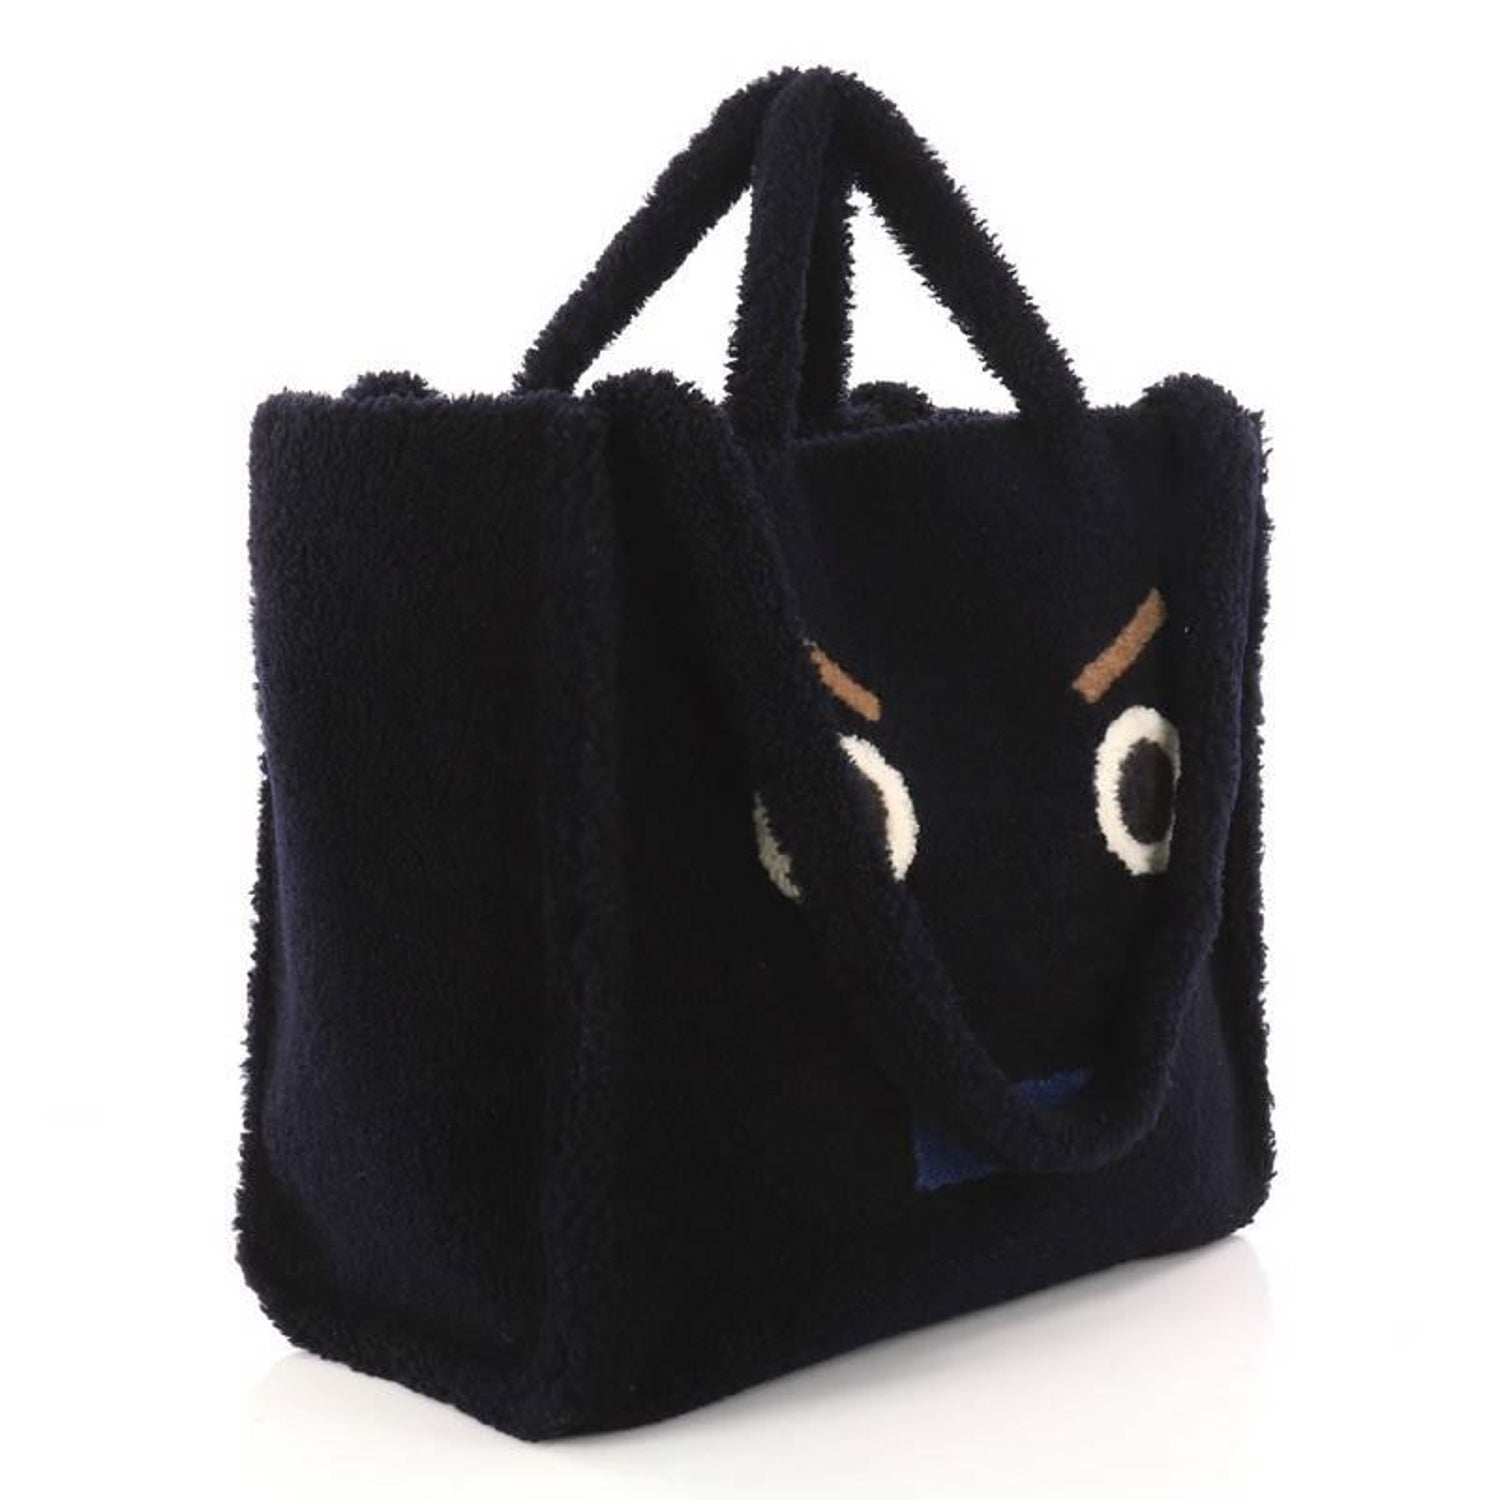 9df6d49199 Fendi Faces Tote Shearling Large For Sale at 1stdibs